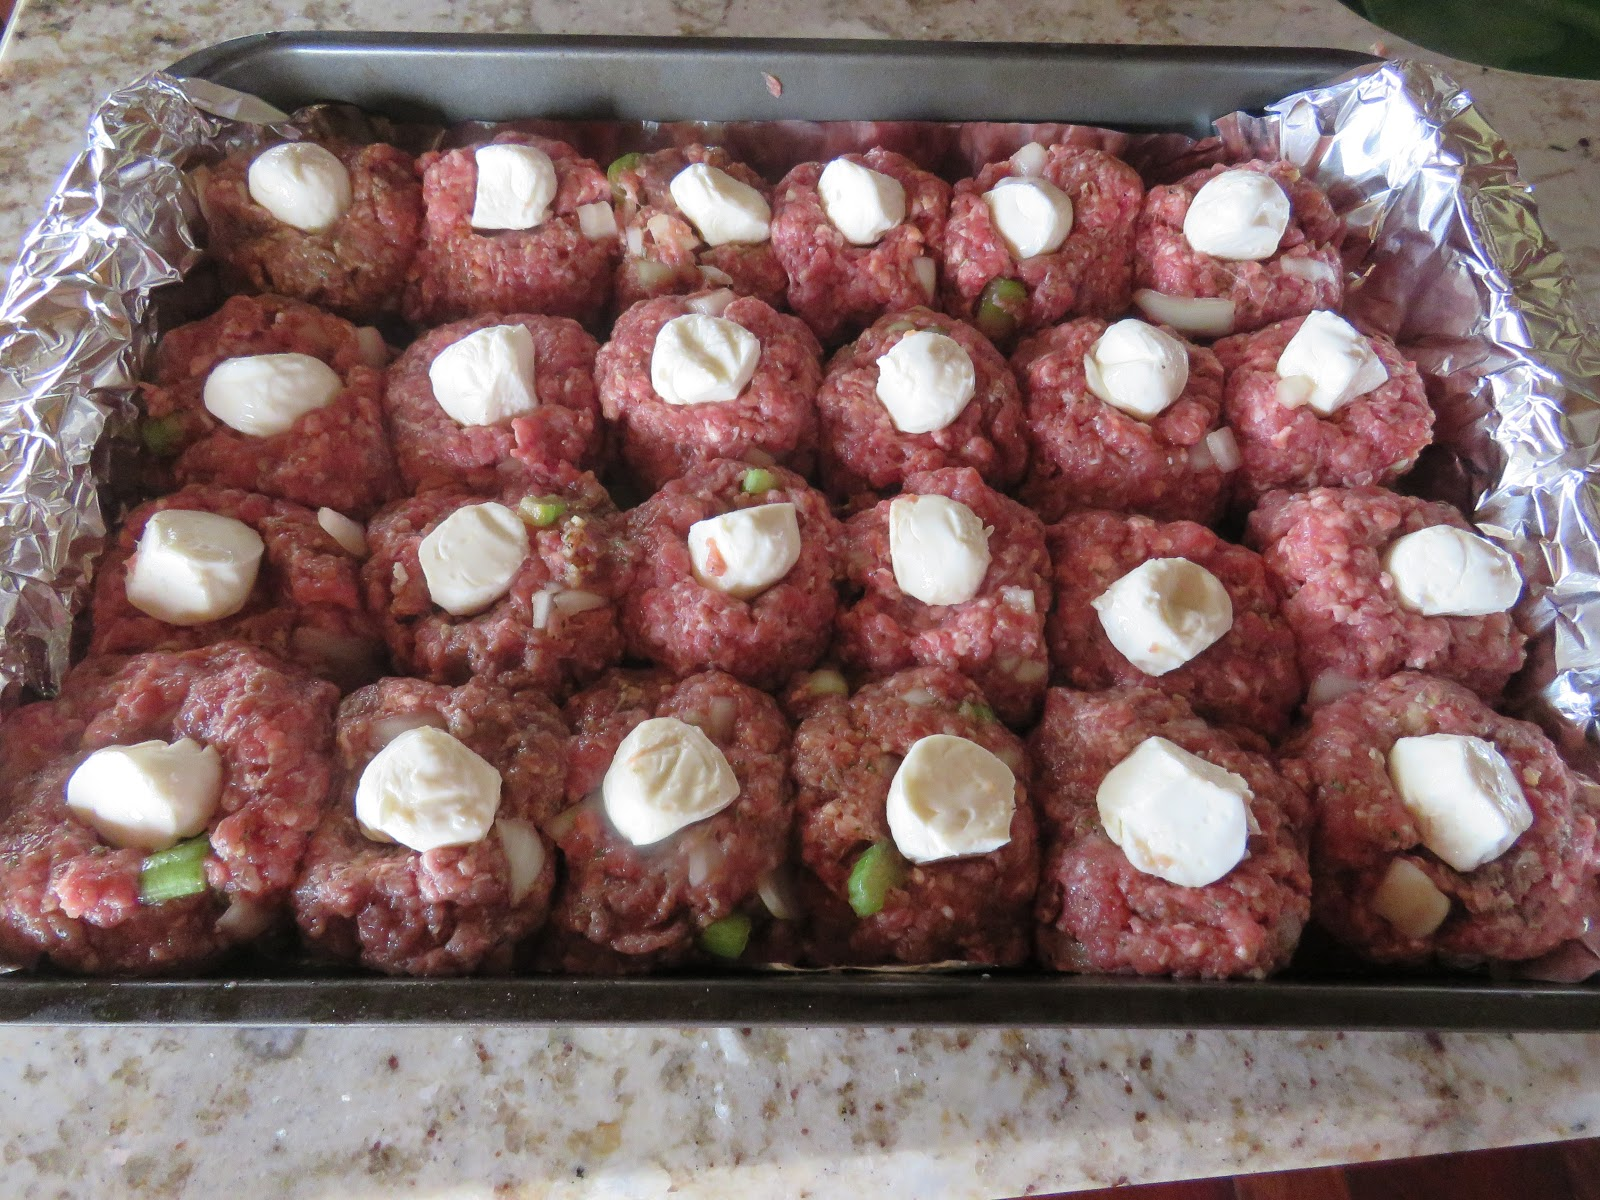 mozzarella balls, stuffed meatballs with a sugar-free Italian seasoned tomato sauce with mushrooms, topped with grated mozzarella cheese and Parmesan cheese